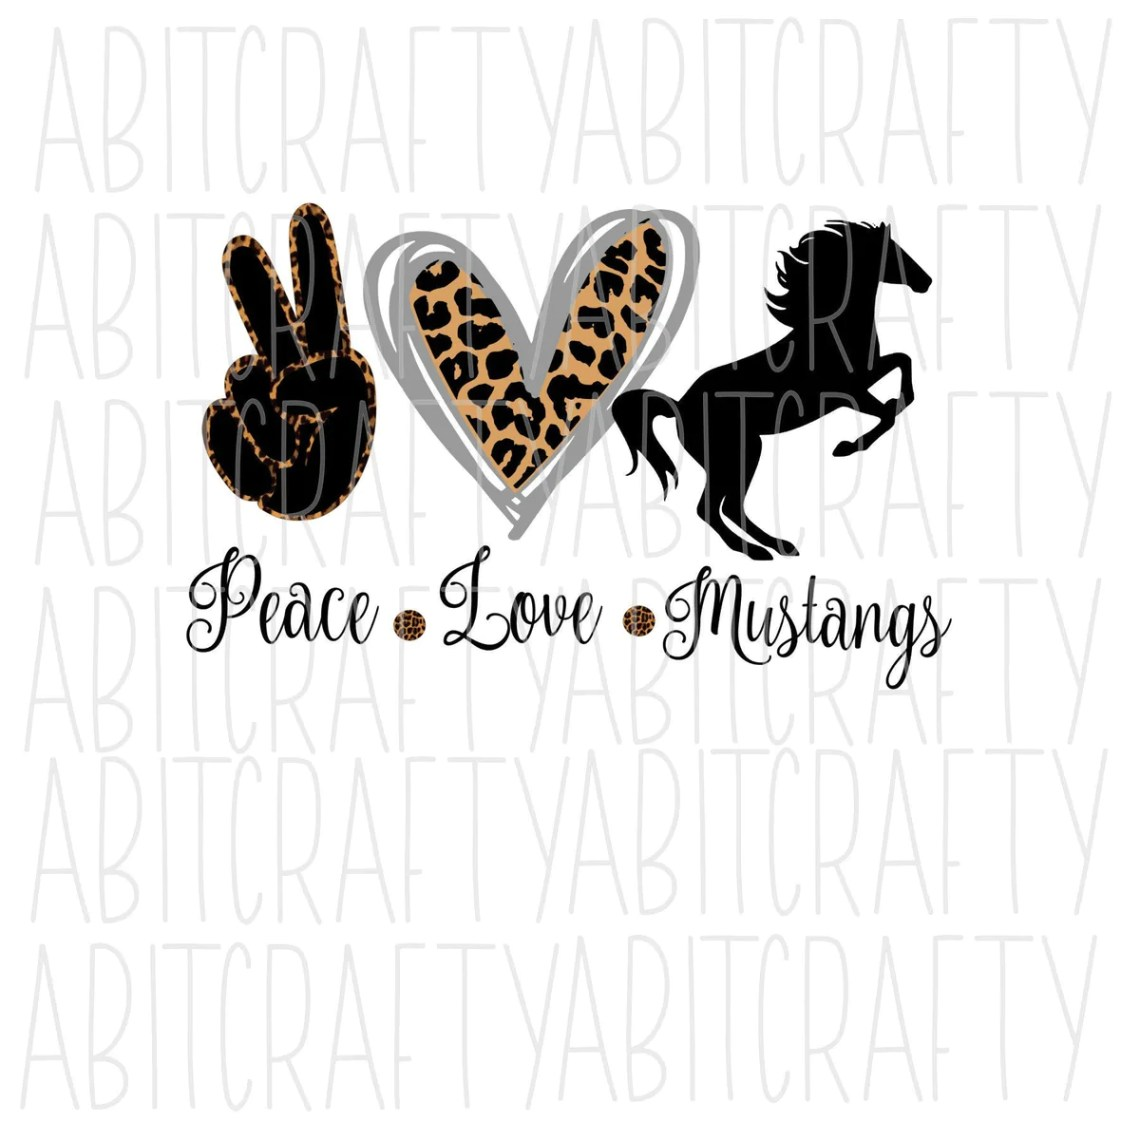 Download Peace, Love, Mustangs png/svg/digital download/sublimation